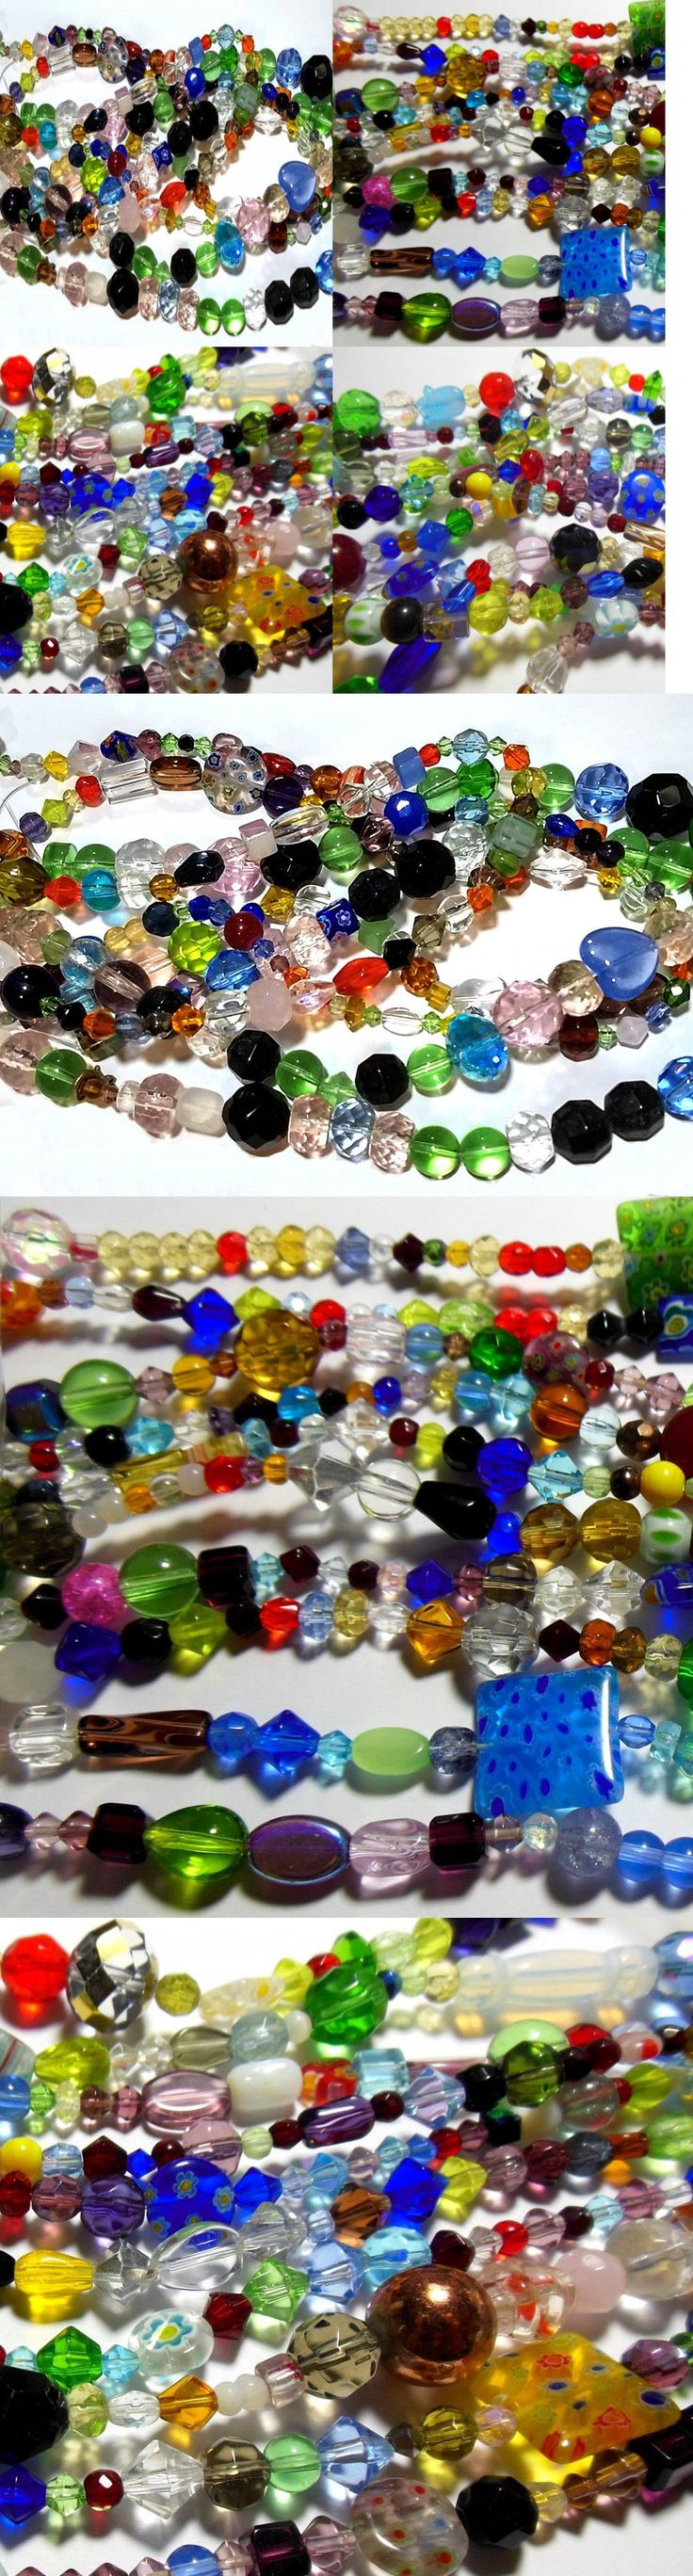 charm product lot freeform store beads in nugget earring art glass crafted bracelet eco beach jump buy jct bulk with making matte ring jewelry sea mini free drilled